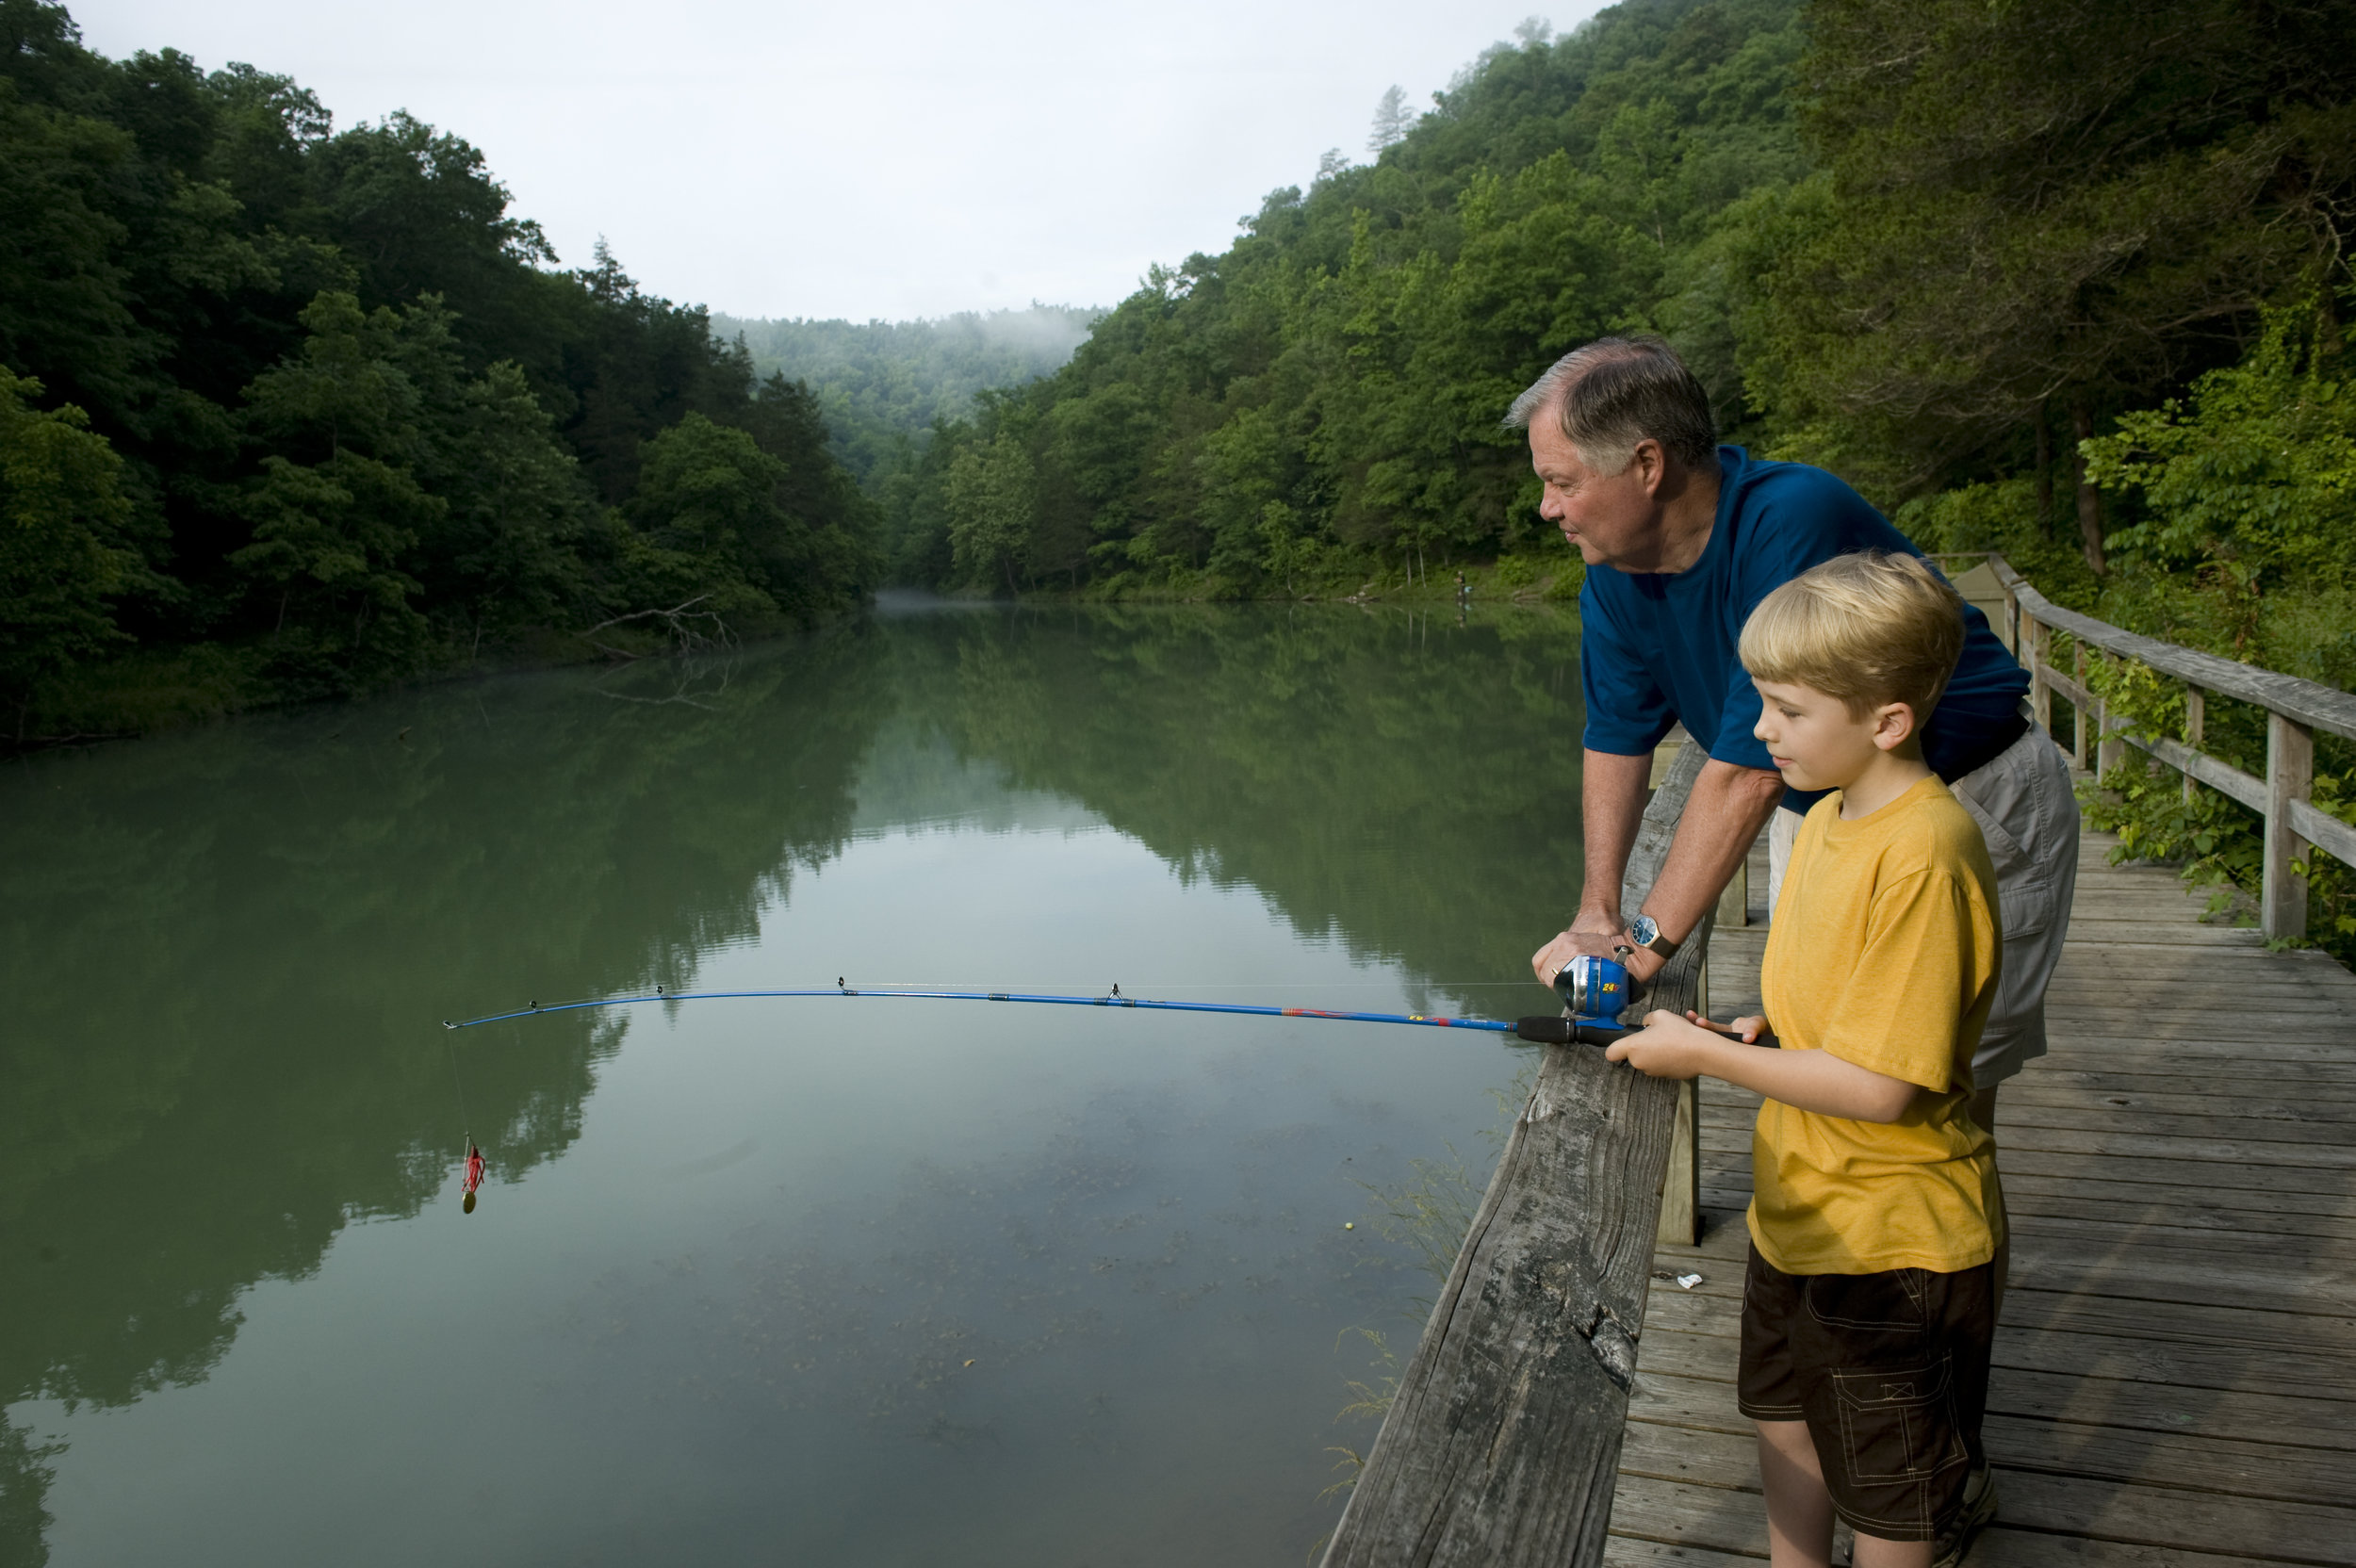 A grandfather teaches his grandson about the joys of fishing.